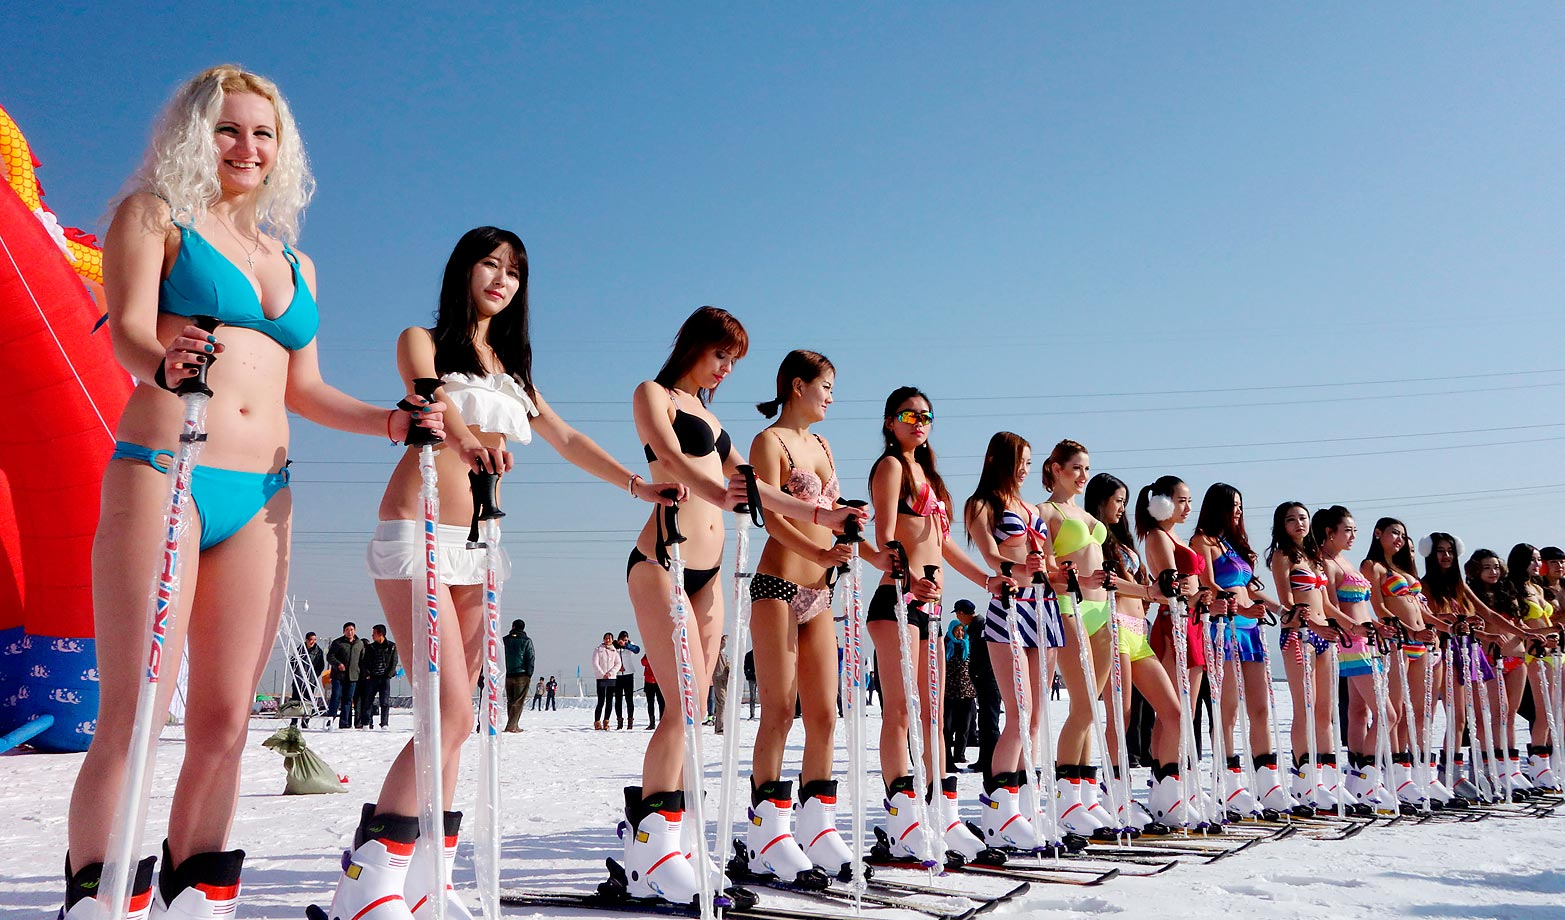 Models promote the first Ice and Snow Tourist Festival in Xining, Qinghai, China.